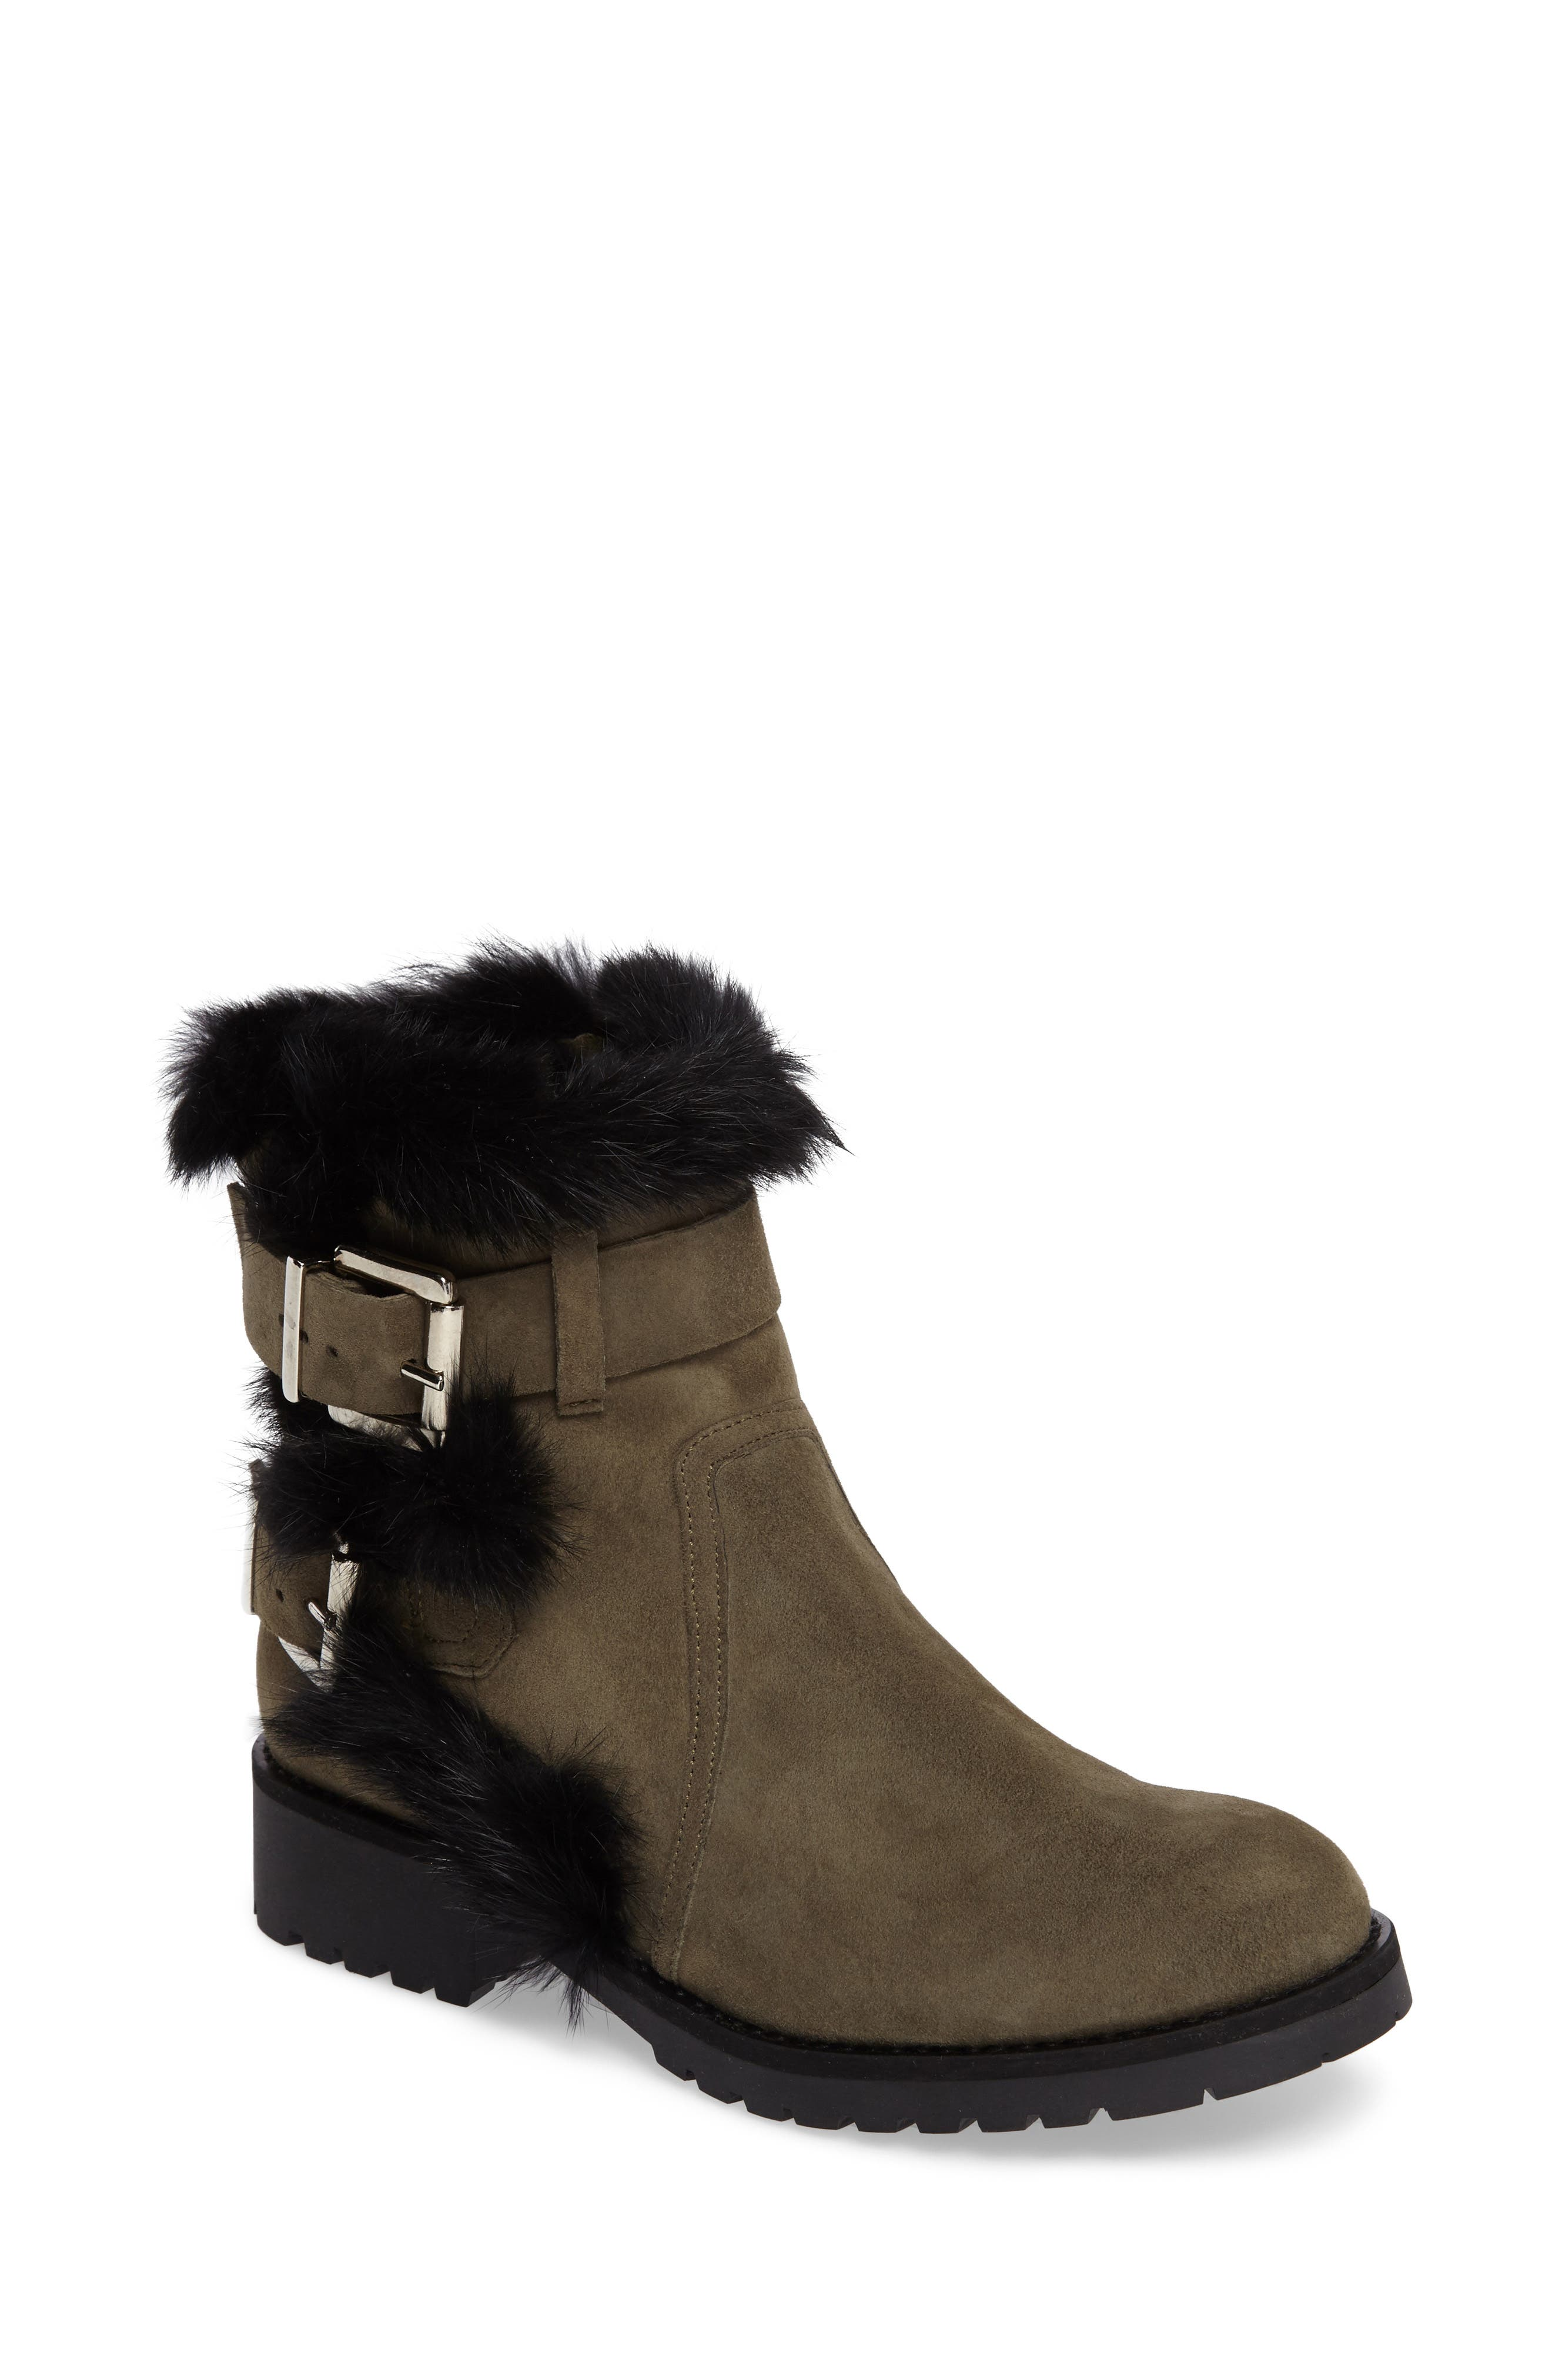 Alternate Image 1 Selected - Charles David Rustic Genuine Rabbit Fur Cuff Boot (Women)